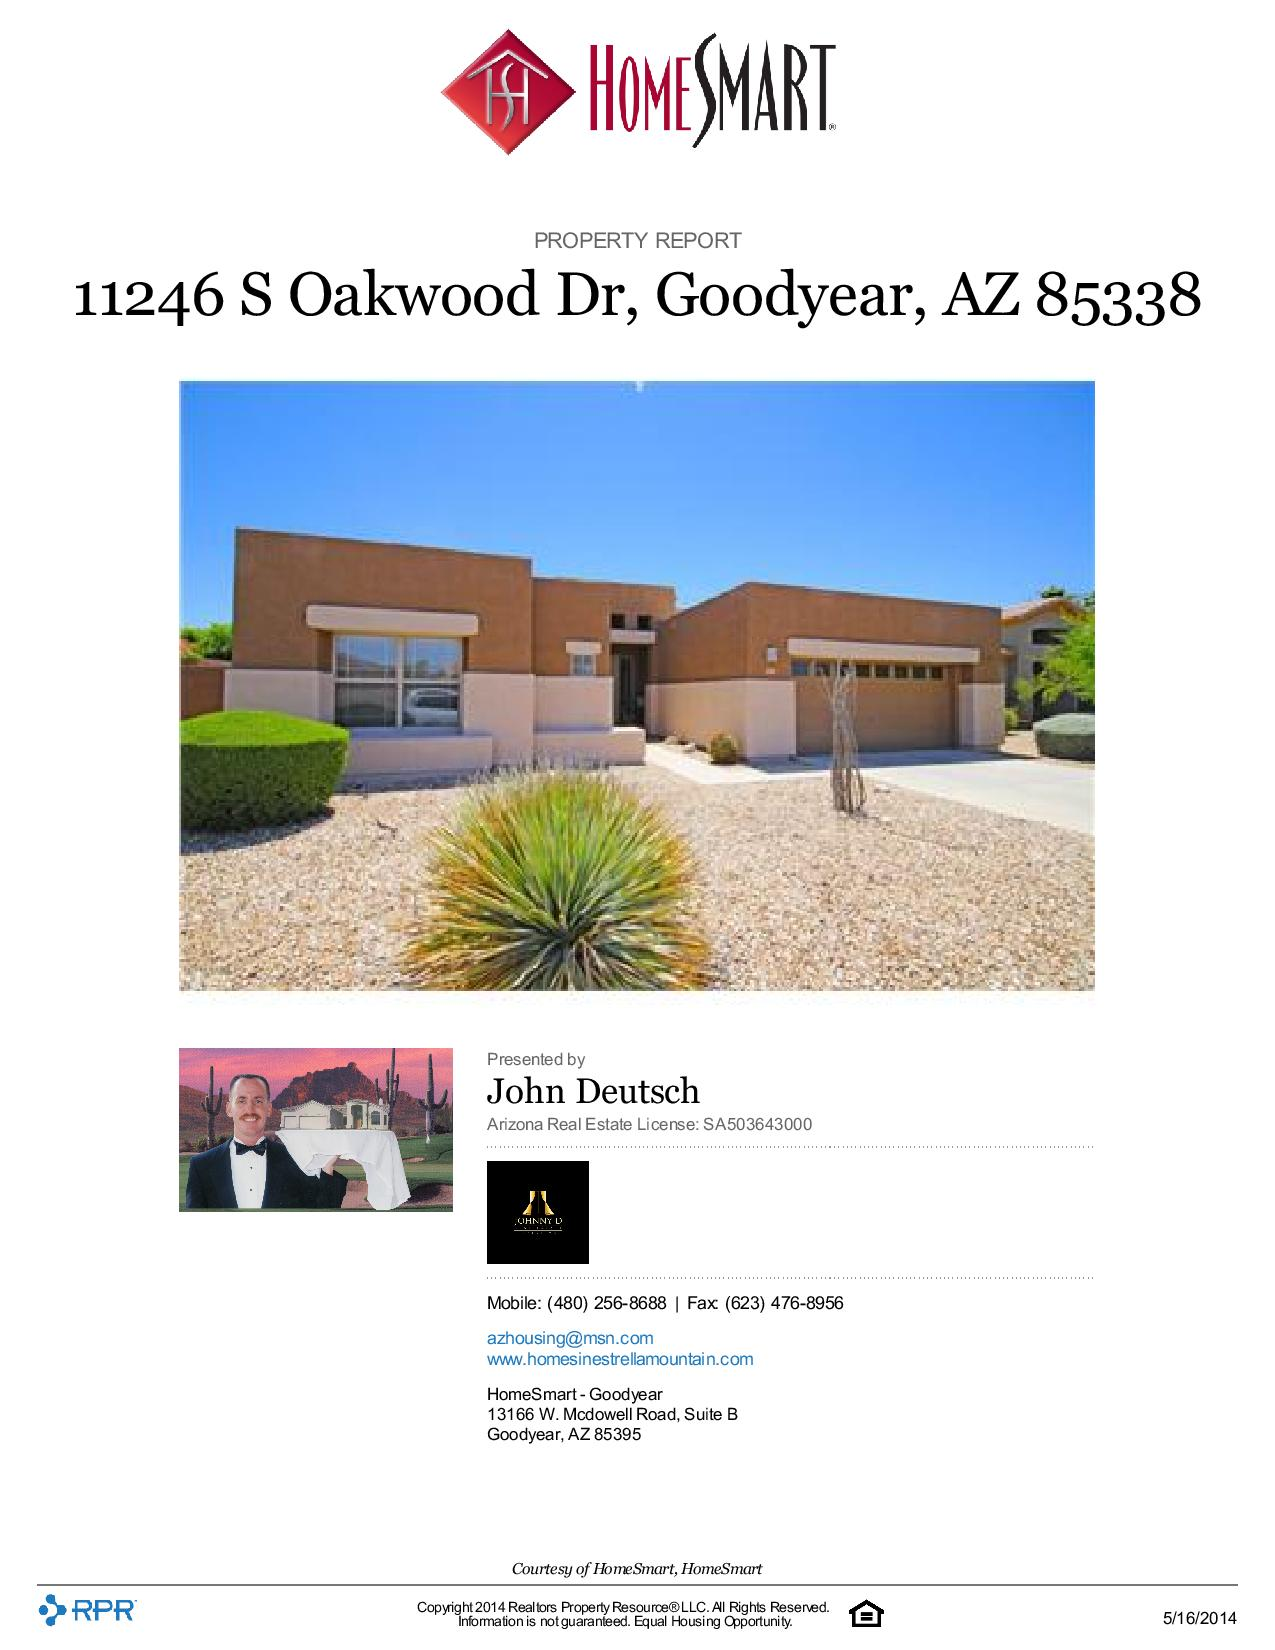 11246-S-Oakwood-Dr-Goodyear-AZ-85338-page-001